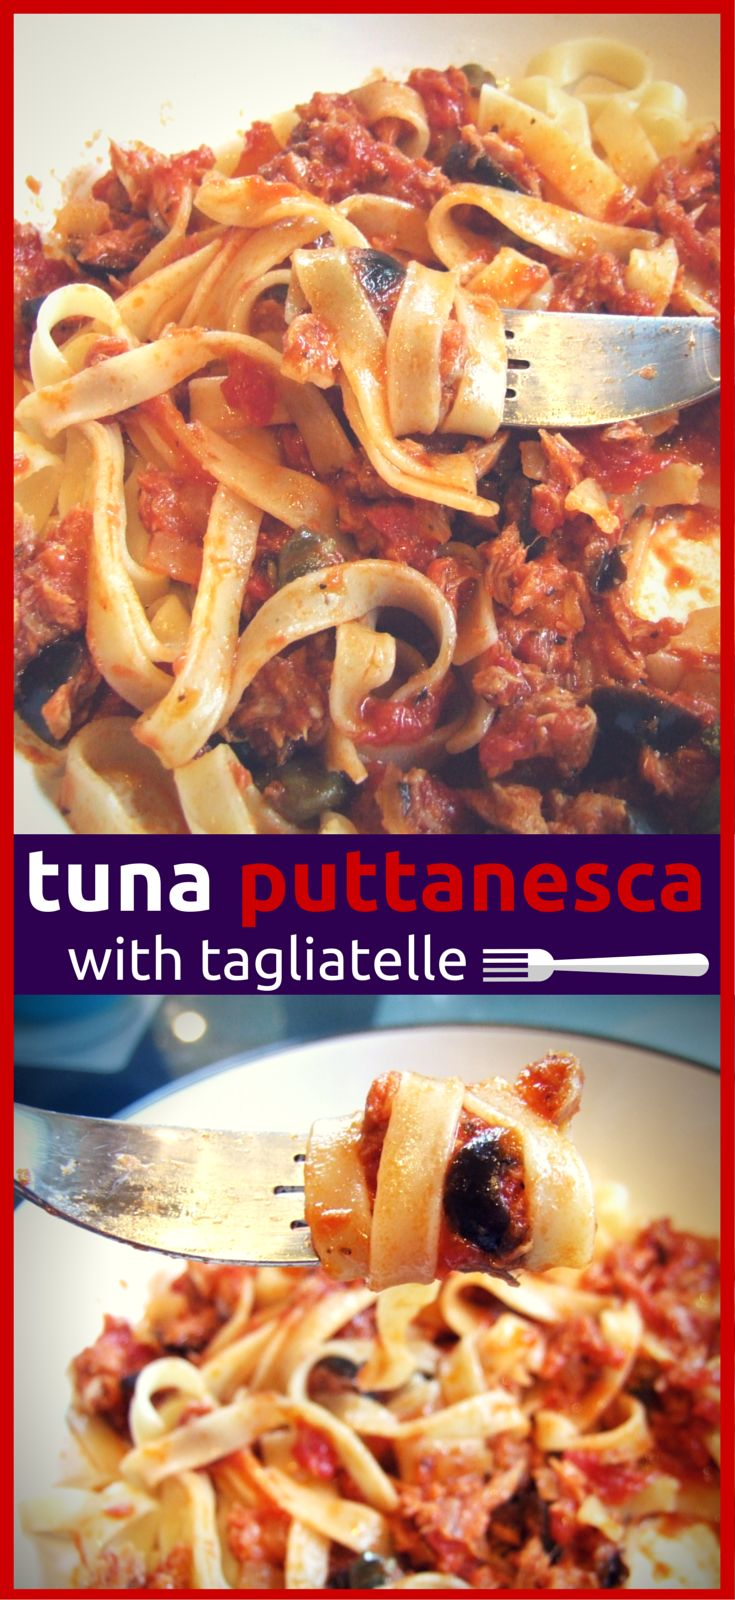 A rich, flavoursome tomato sauce with olives, capers & tuna. A tasty twist on traditional pasta puttanesca that will become a family favourite dinner!